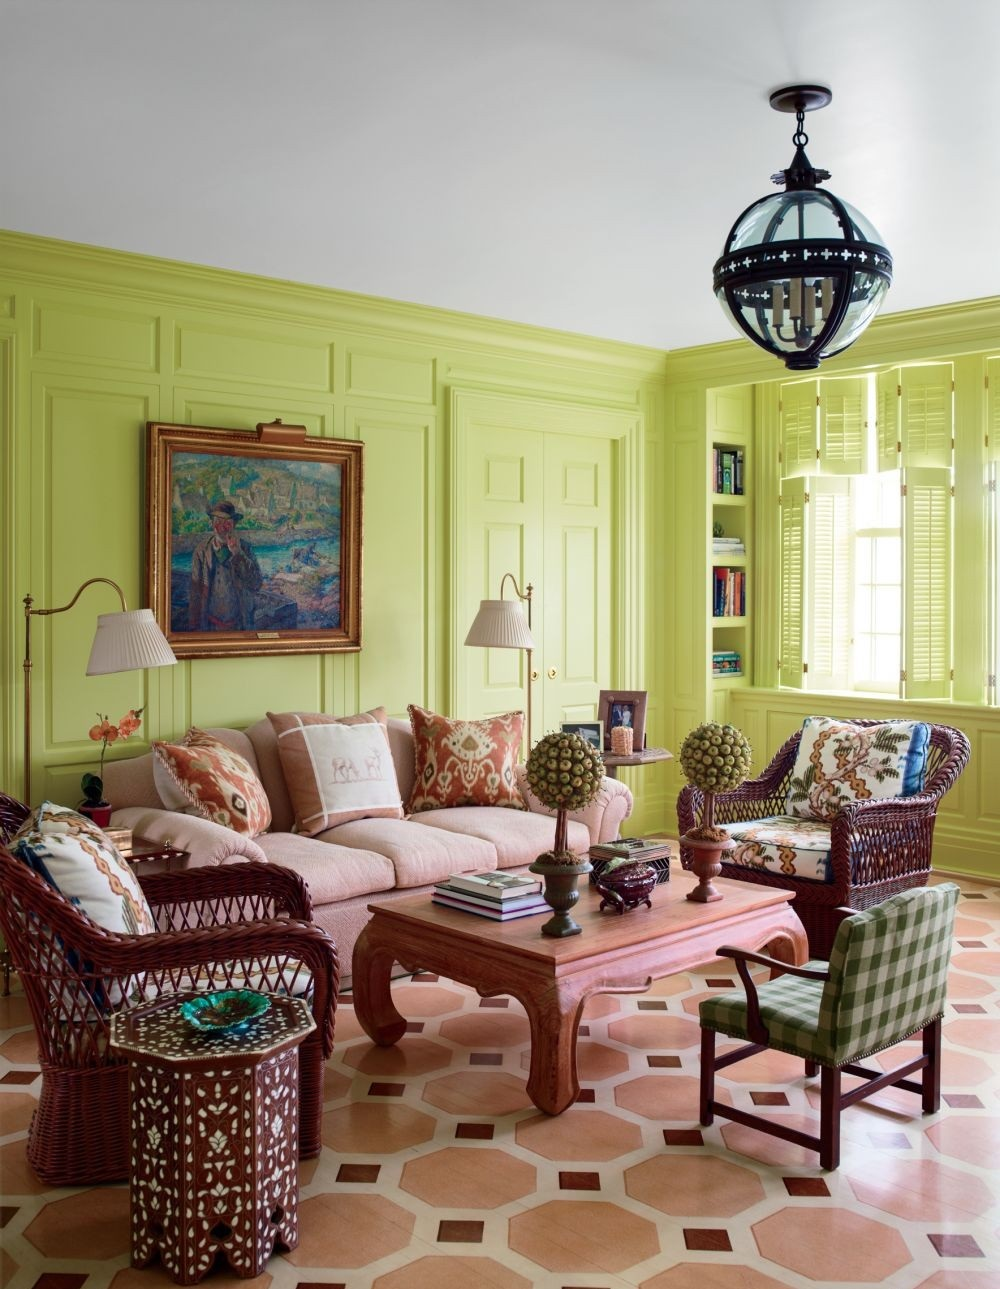 how to do the best usage of green color on your living room design how to do the best usage of the green color on a living room design How to Do the Best Usage of the Green Color on a Living Room Design how to do the best usage of green color on your living room design 07